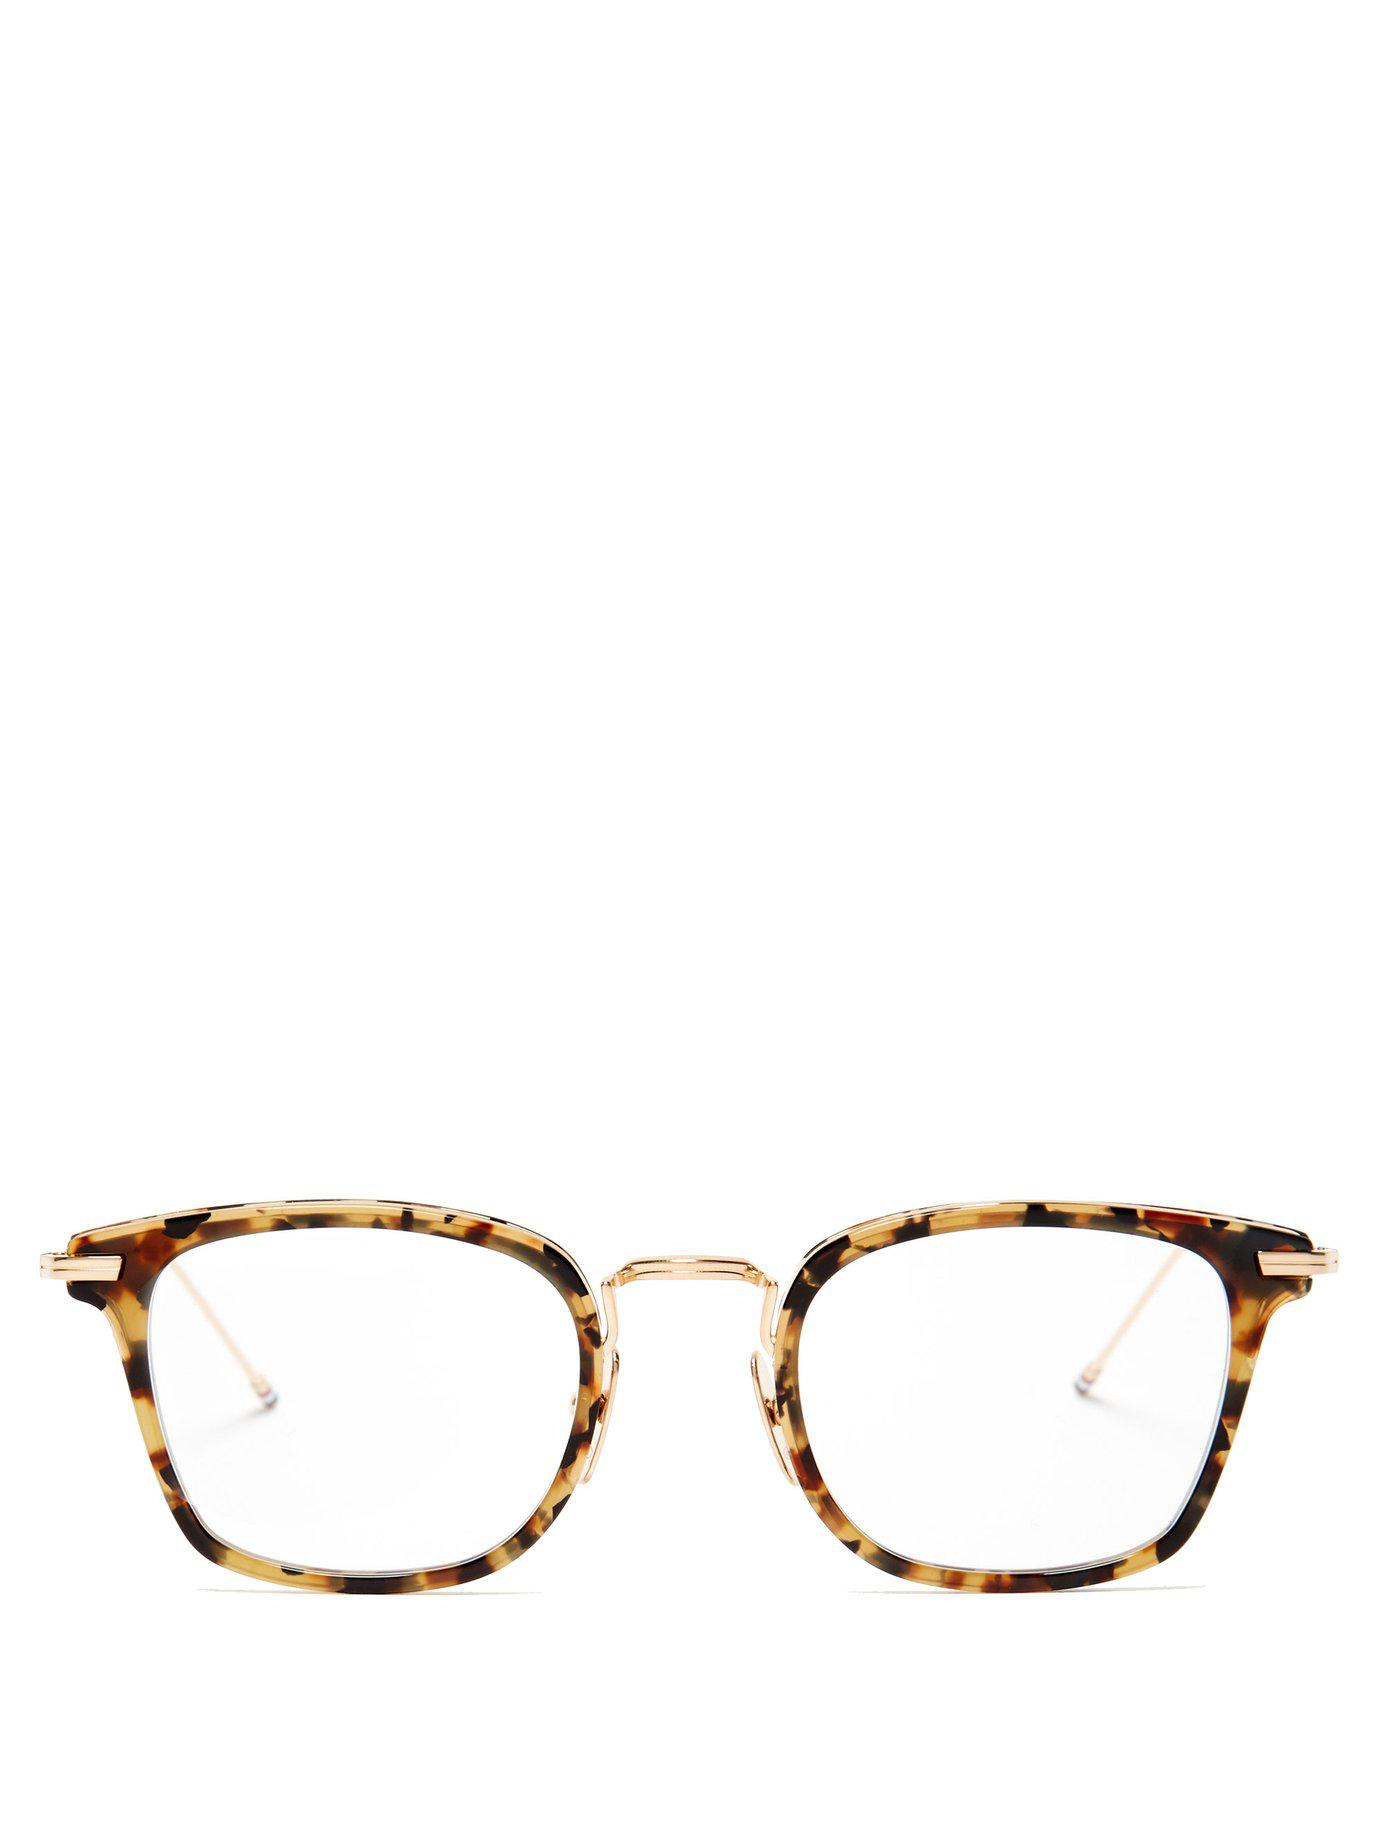 64ff37f4a6 Thom Browne. Men s Brown D Frame Tortoiseshell Acetate And Metal Glasses